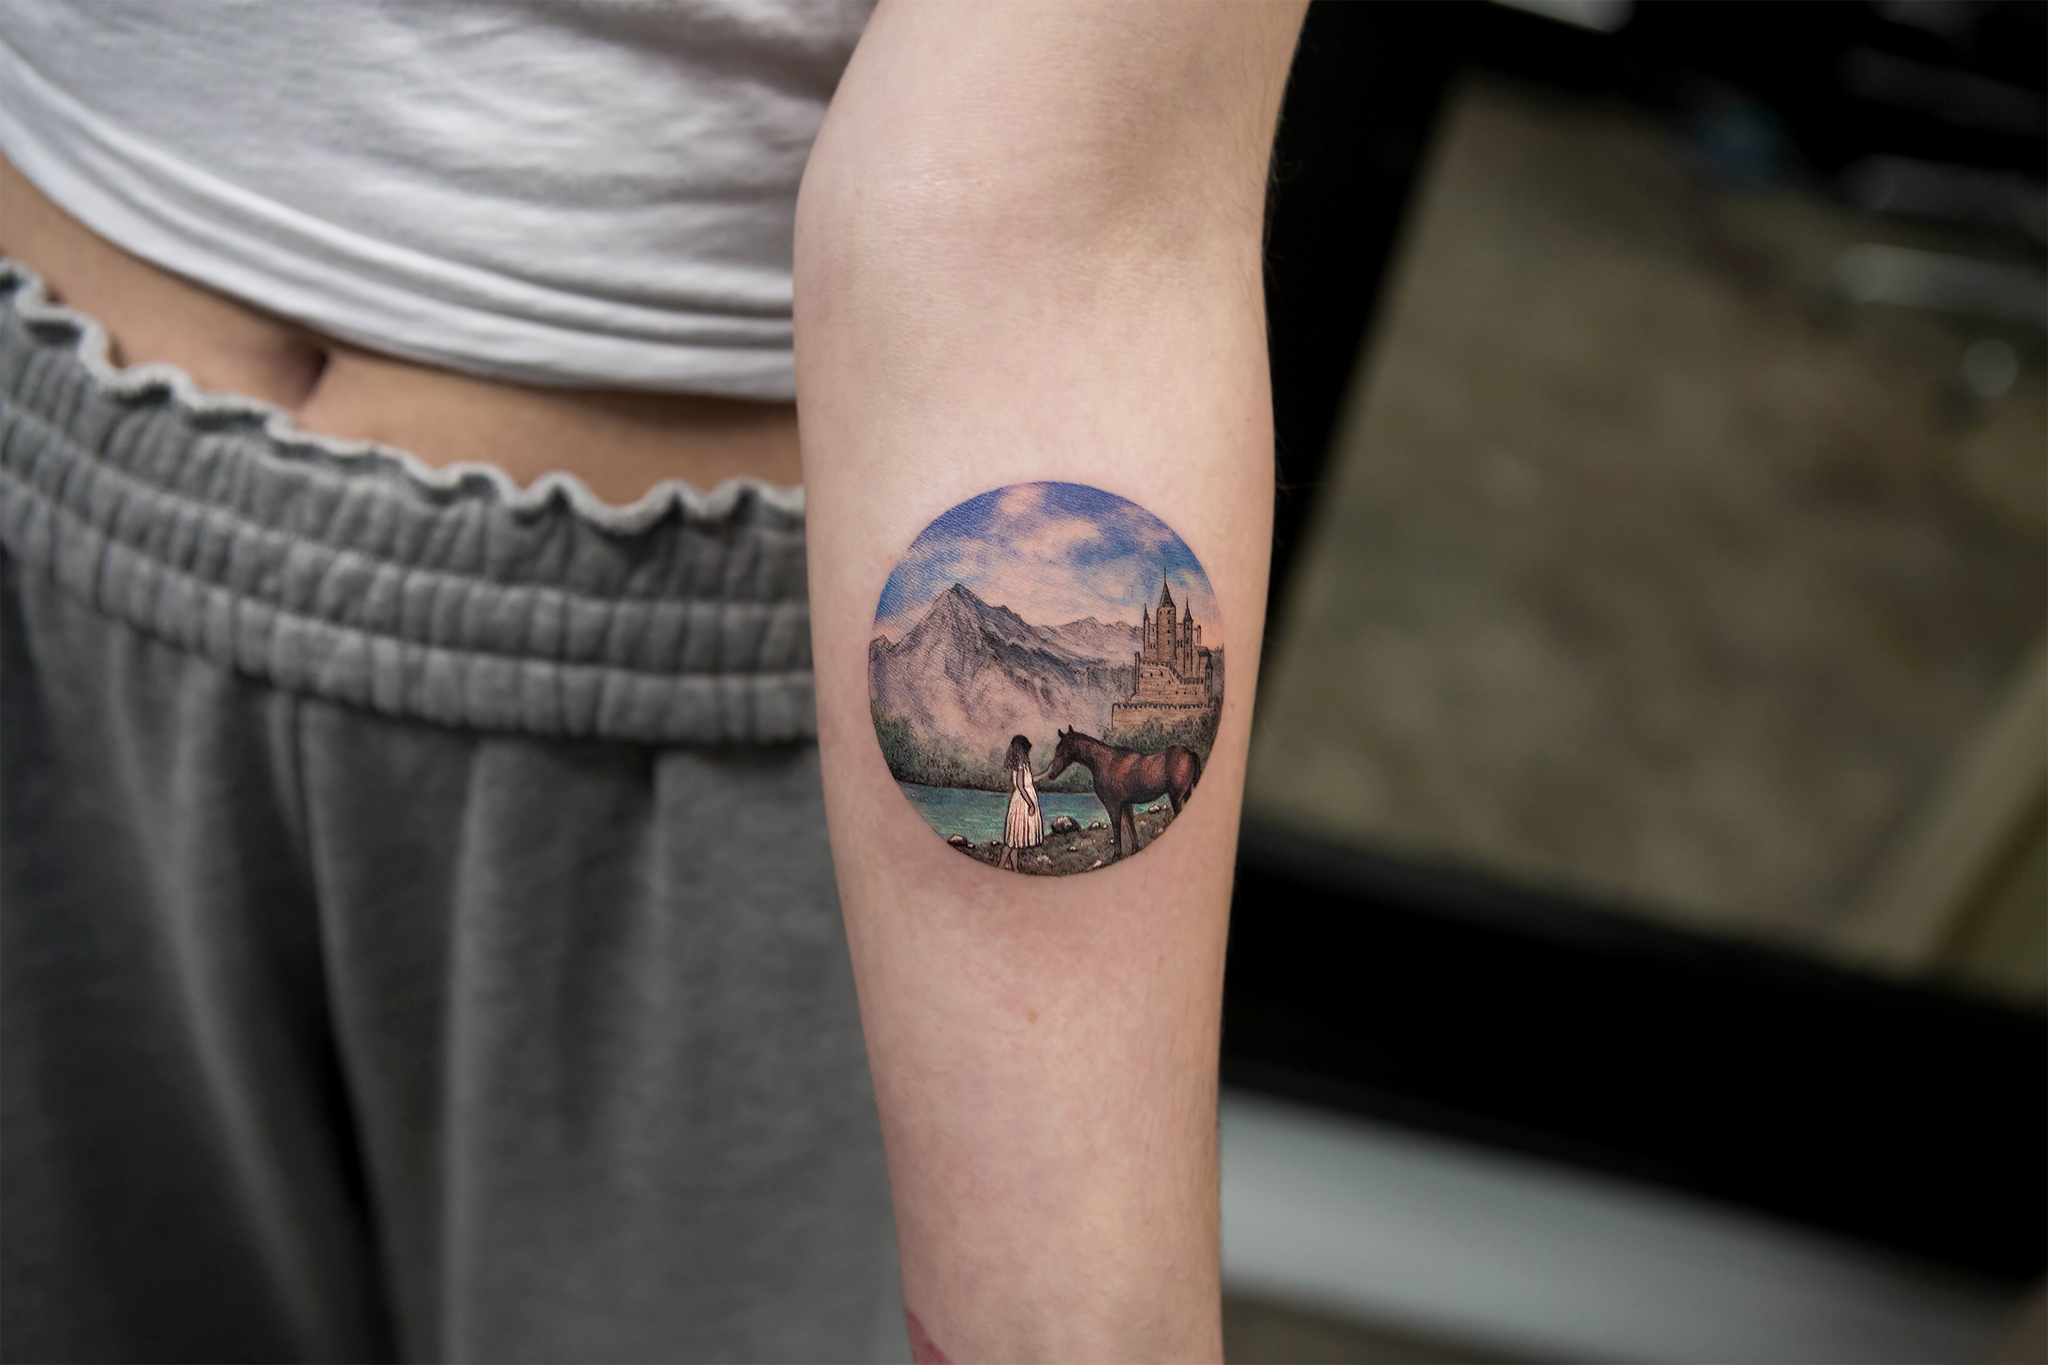 Awesome tattoo shops in nyc for every style